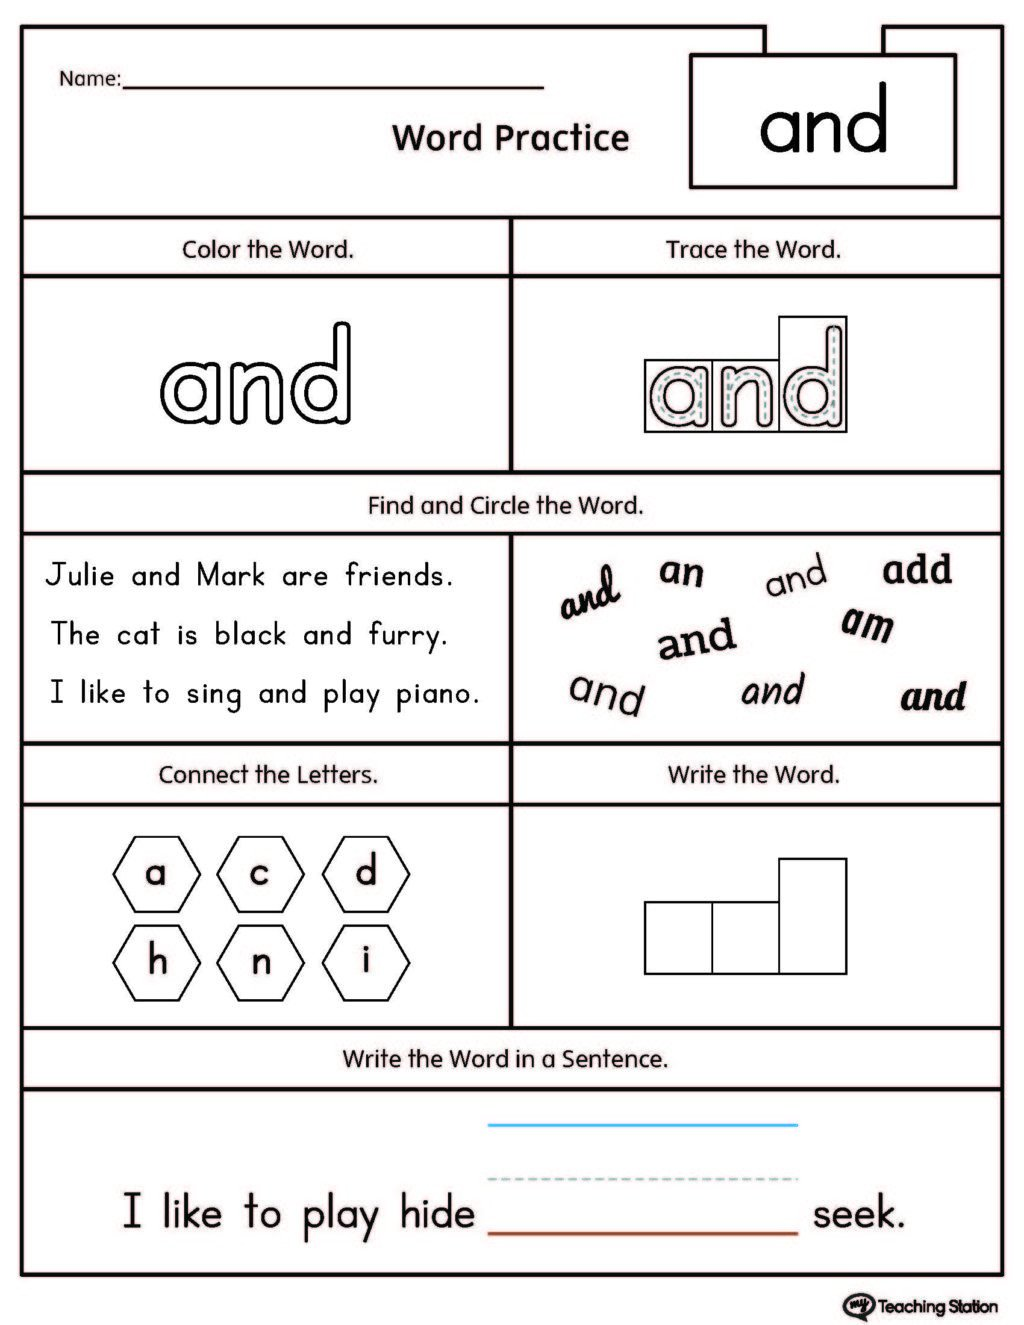 worksheetgarten sheet image inspirations high frequency word and printable for sequencing story book money to know me 1024x1325